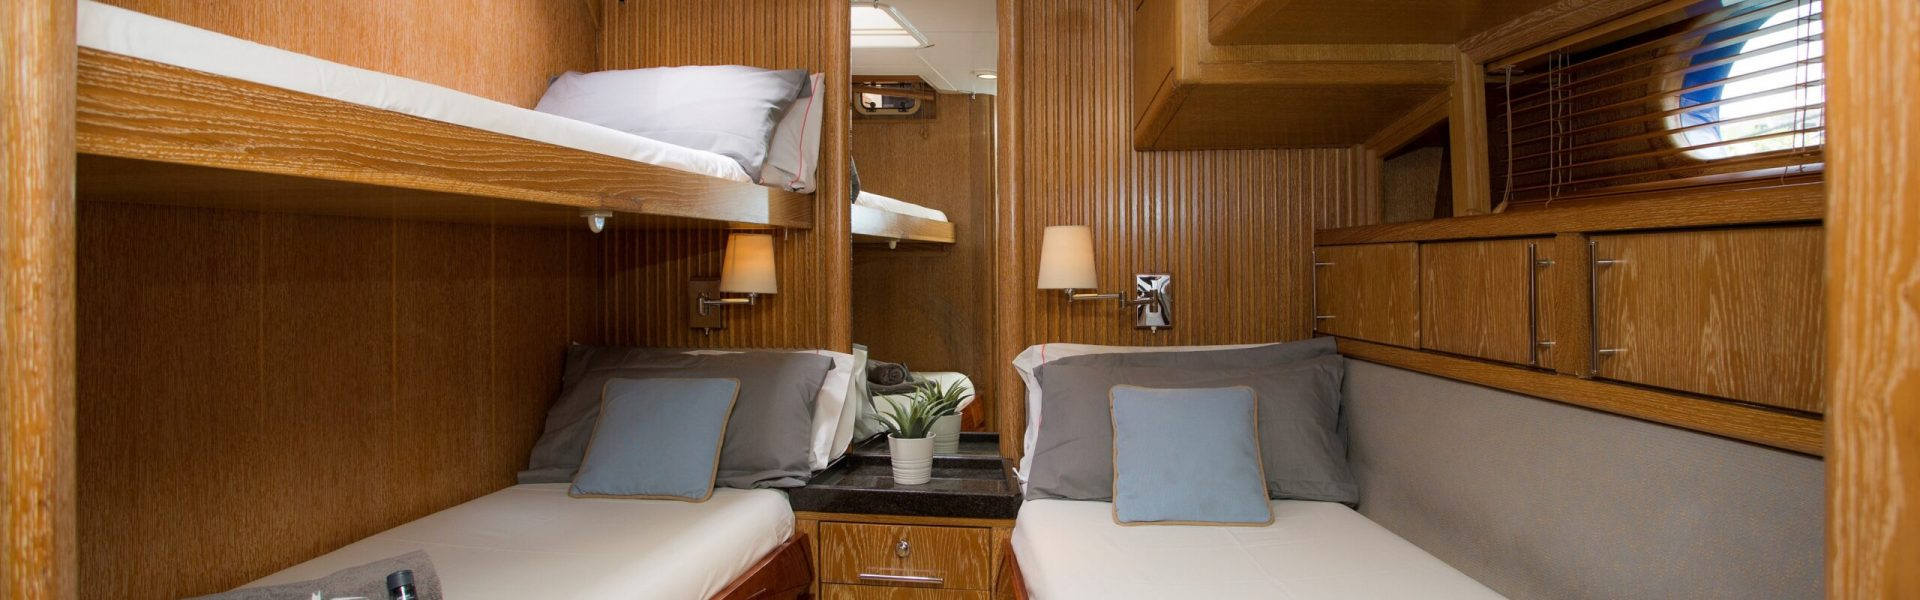 twin guest cabin with bunk bed down